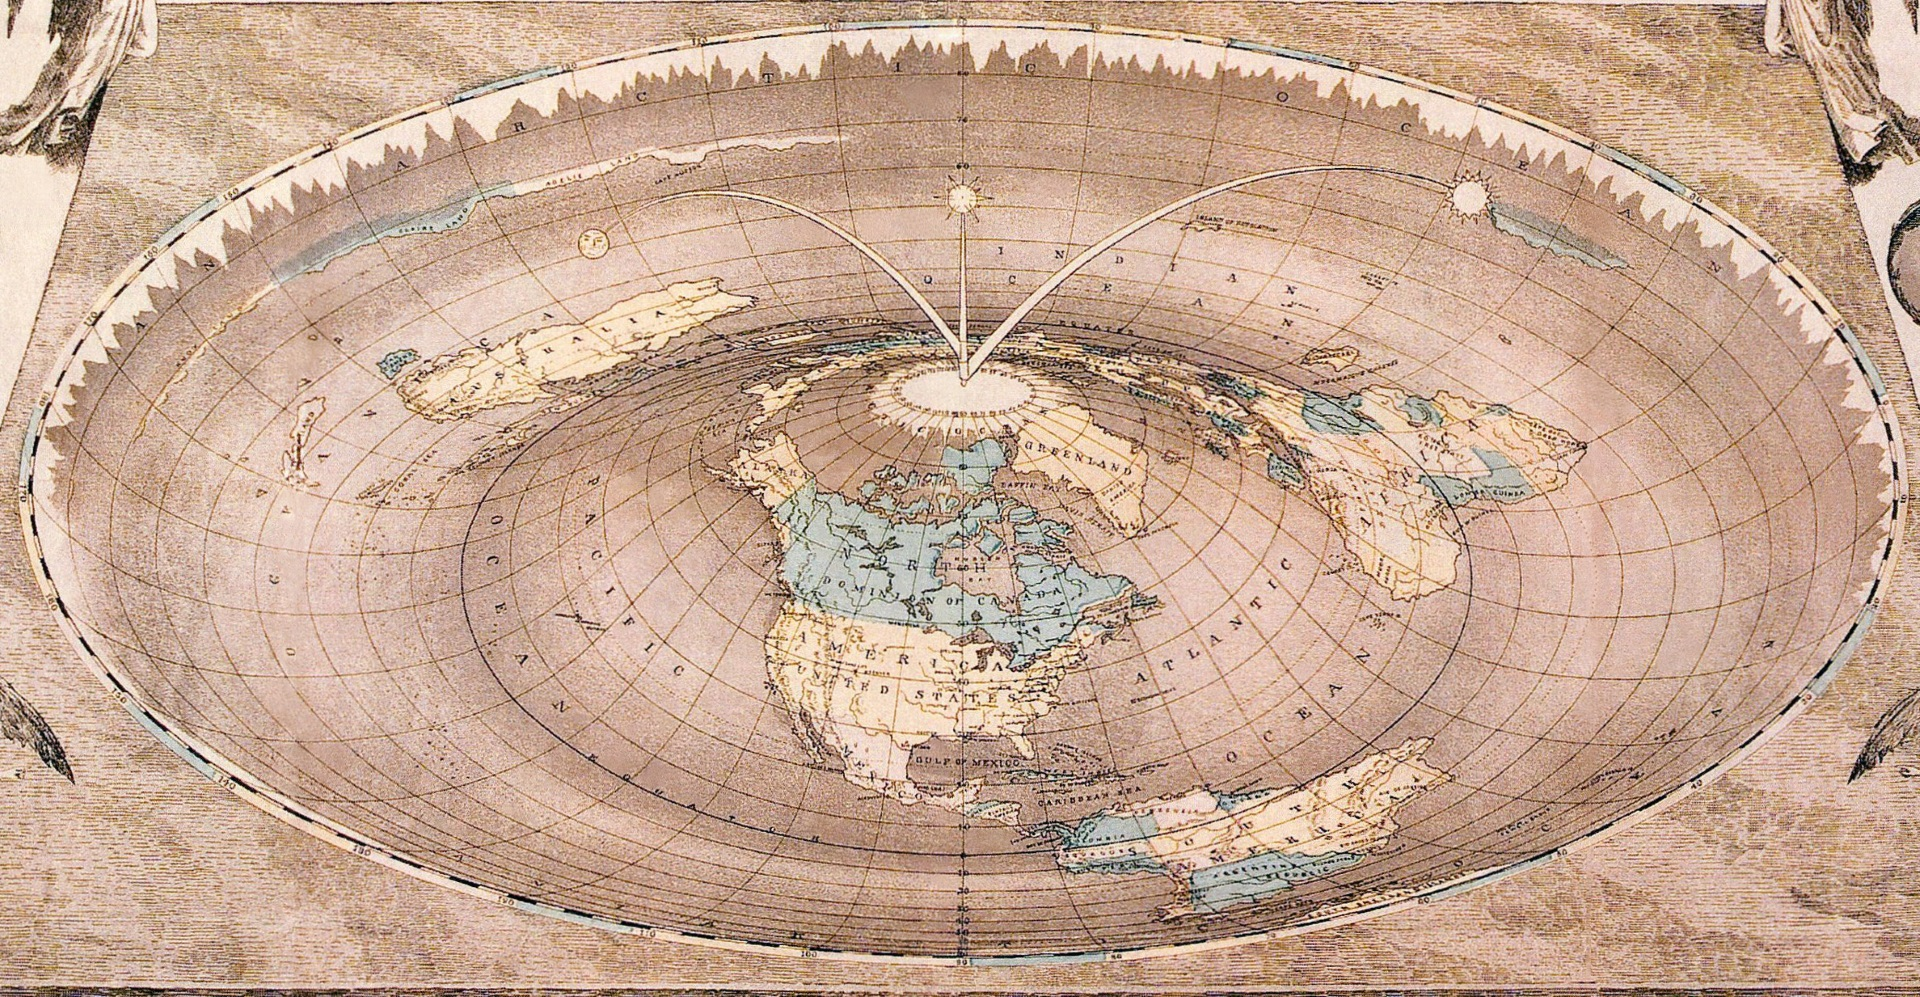 Wallpaper Falling Off Wall Flat Wrong The Misunderstood History Of Flat Earth Theories